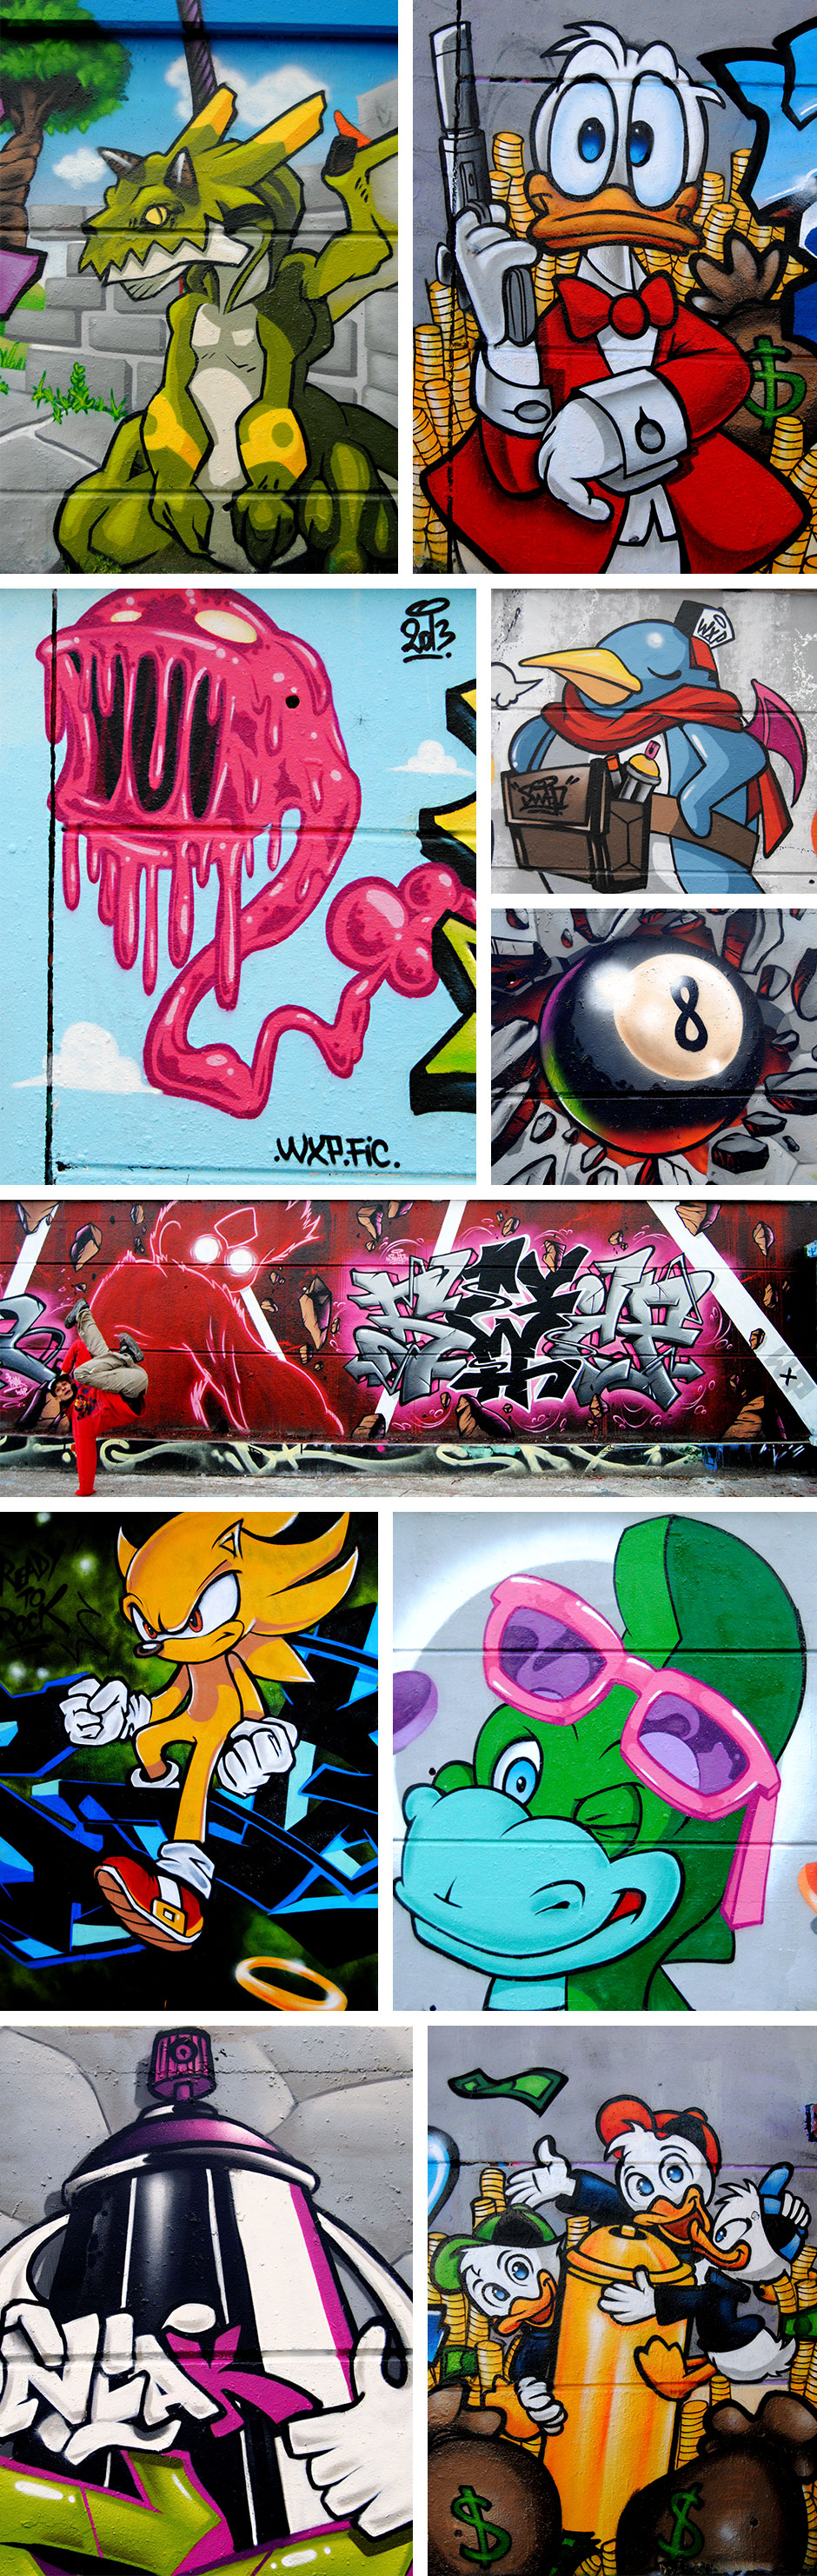 personnages-graffiti-1